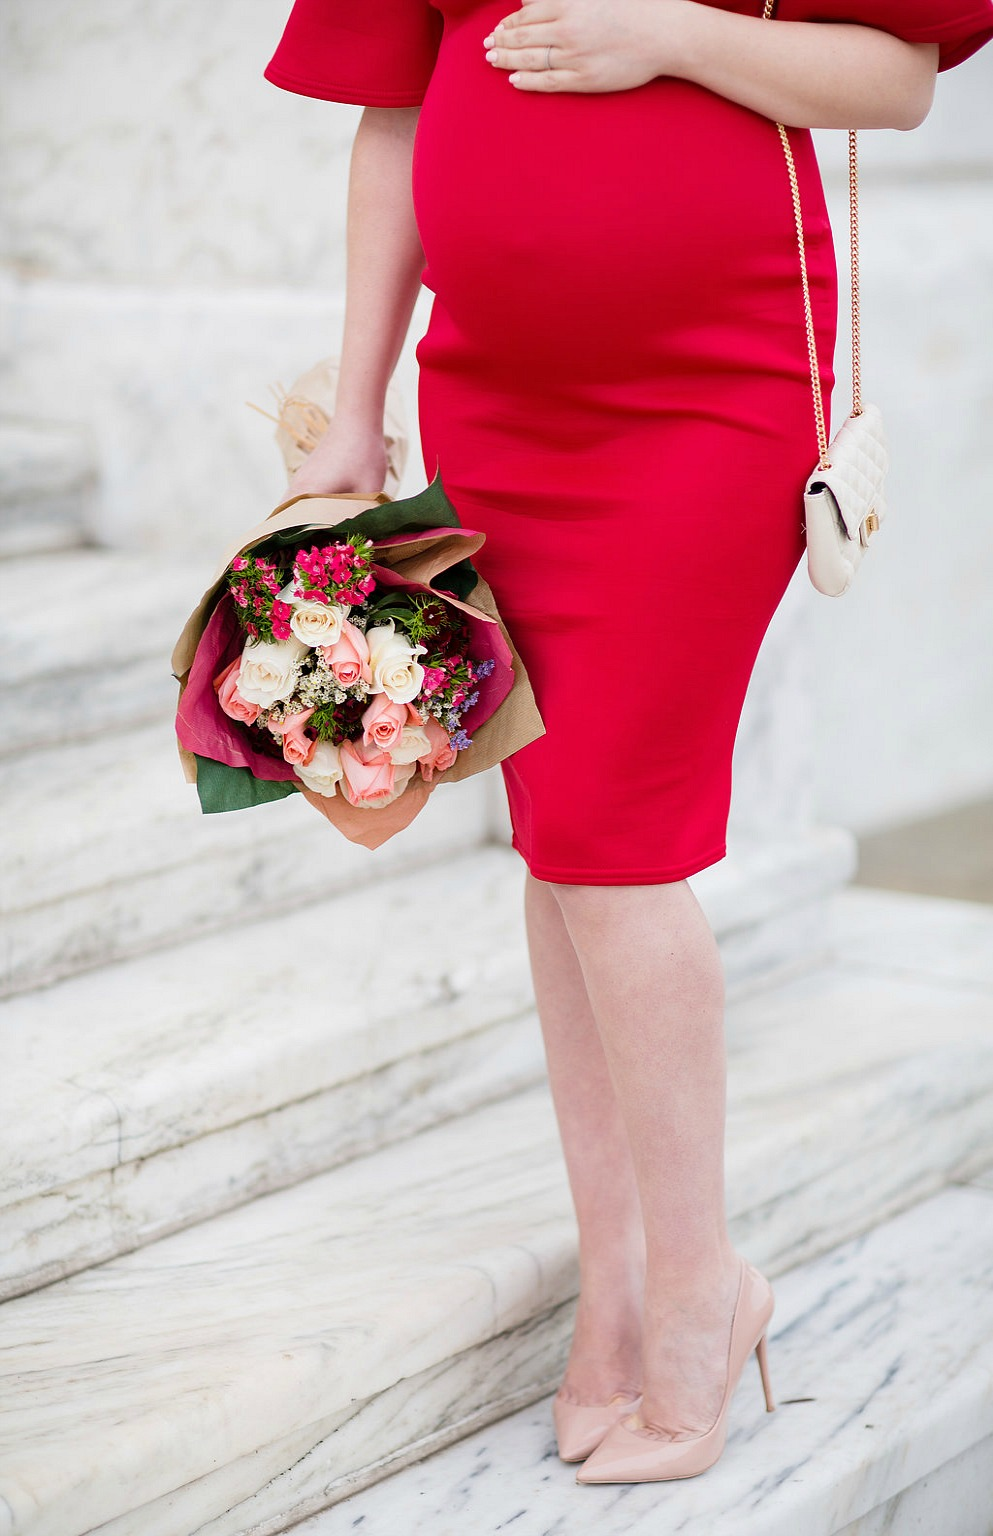 valentines-day-maternity-fashion-outfit-pregnancy-style-rose-city-style-guide-red-dress-gift-guide-canadian-blogger